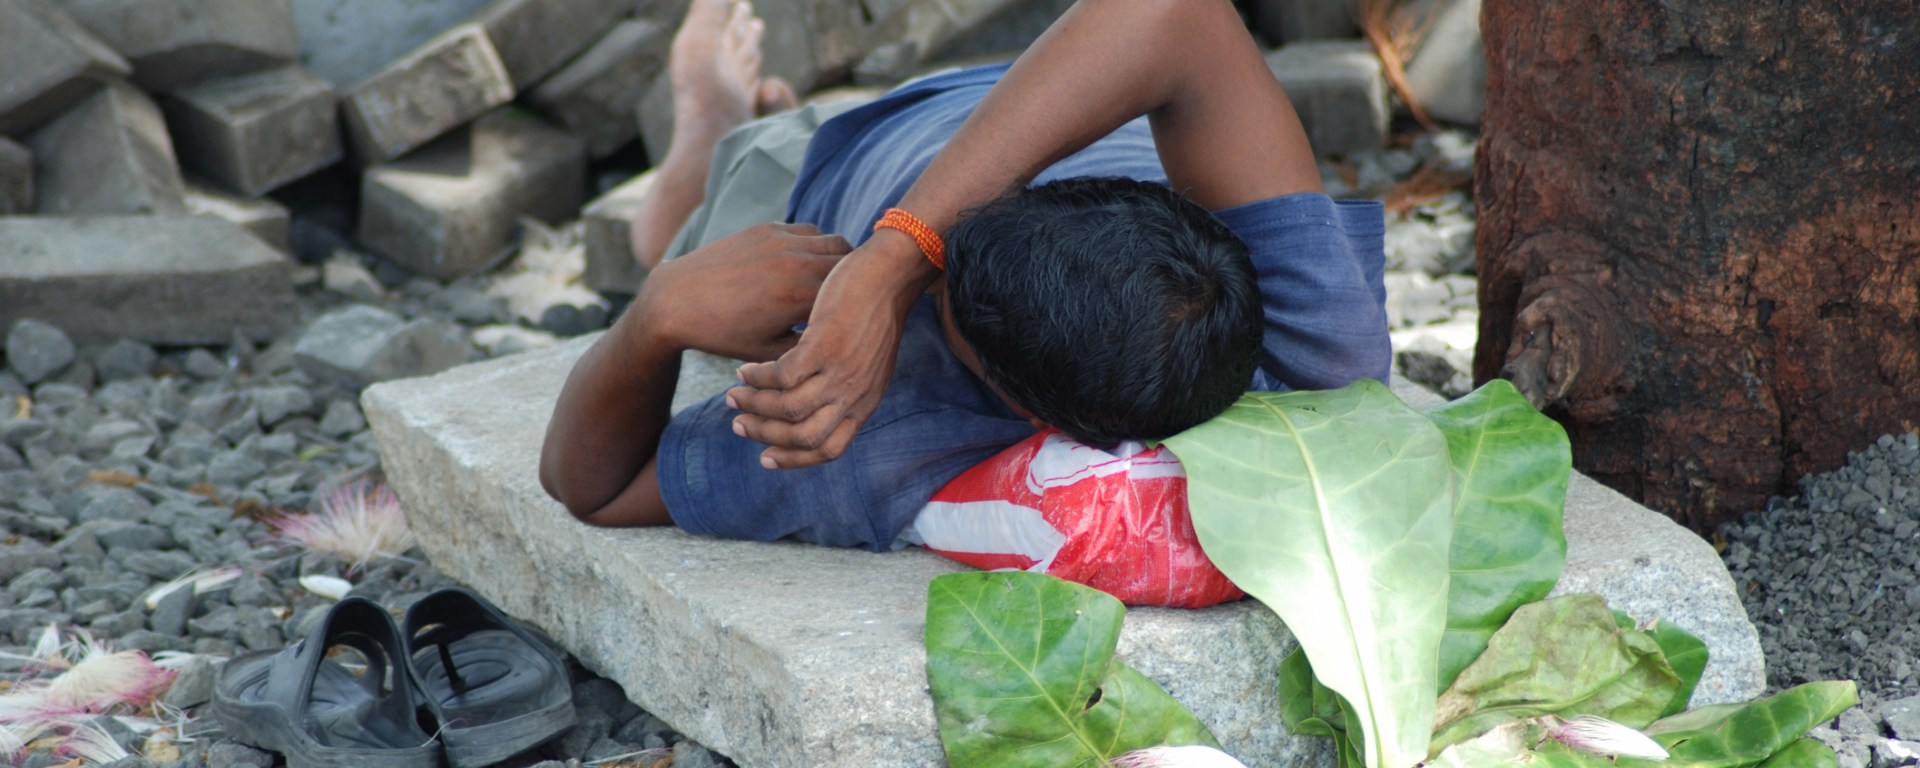 Labourer taking an afternoon nap